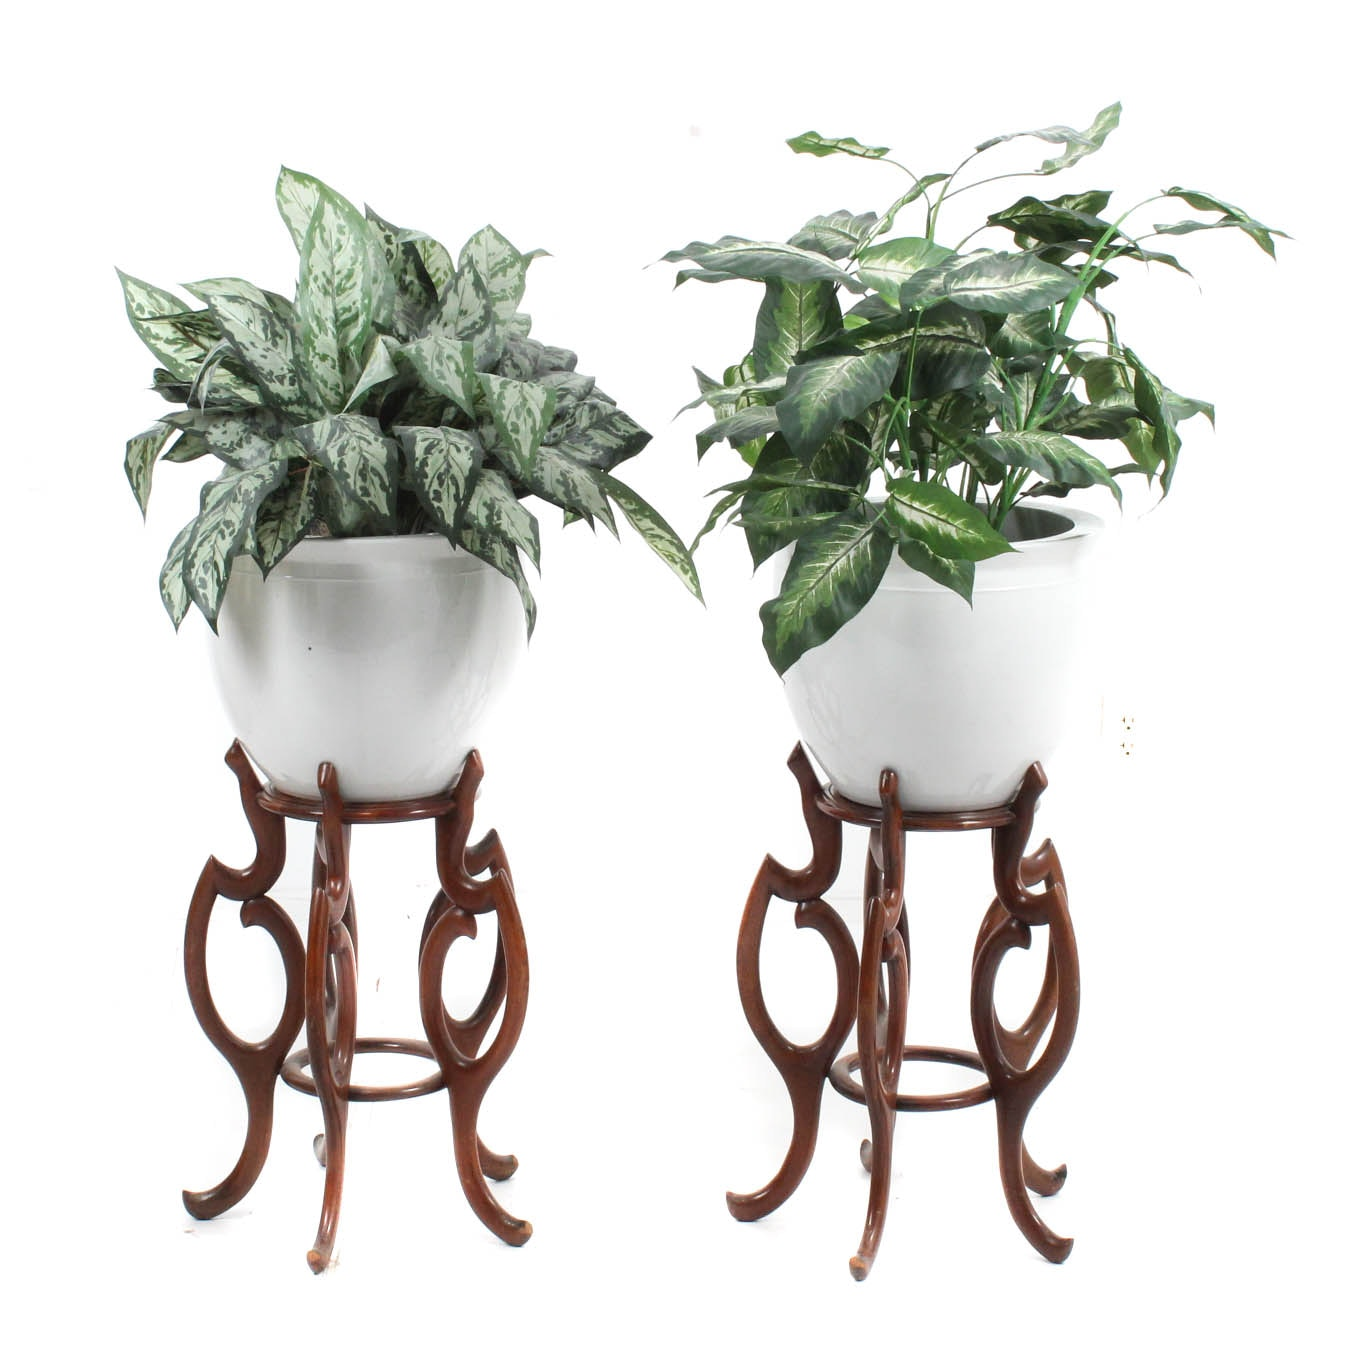 Pair of White Glazed Ceramic Planters